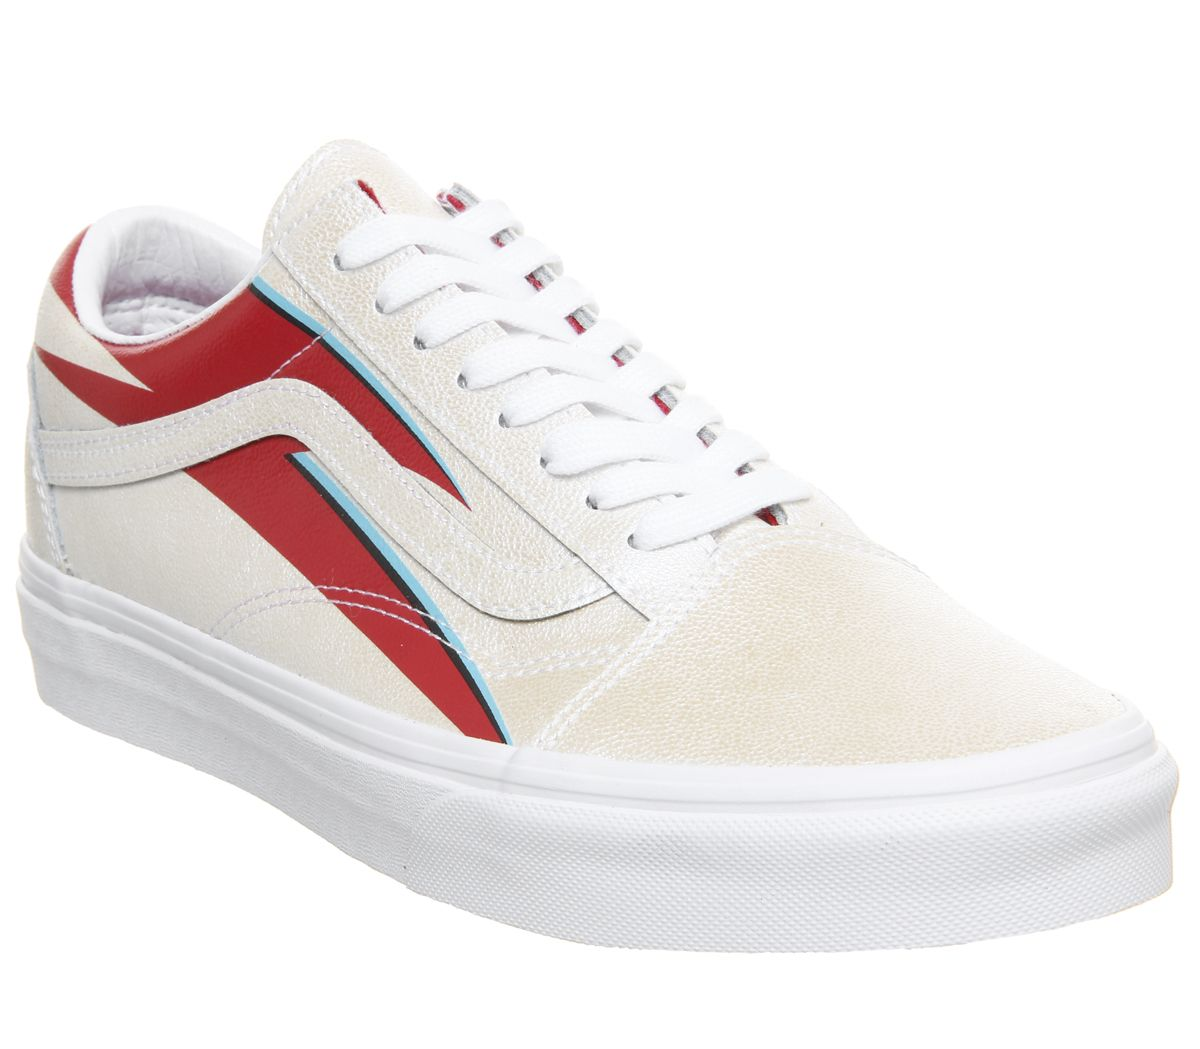 6862b144d7 Vans Old Skool Trainers Aladdin Sane True White X Db - Unisex Sports